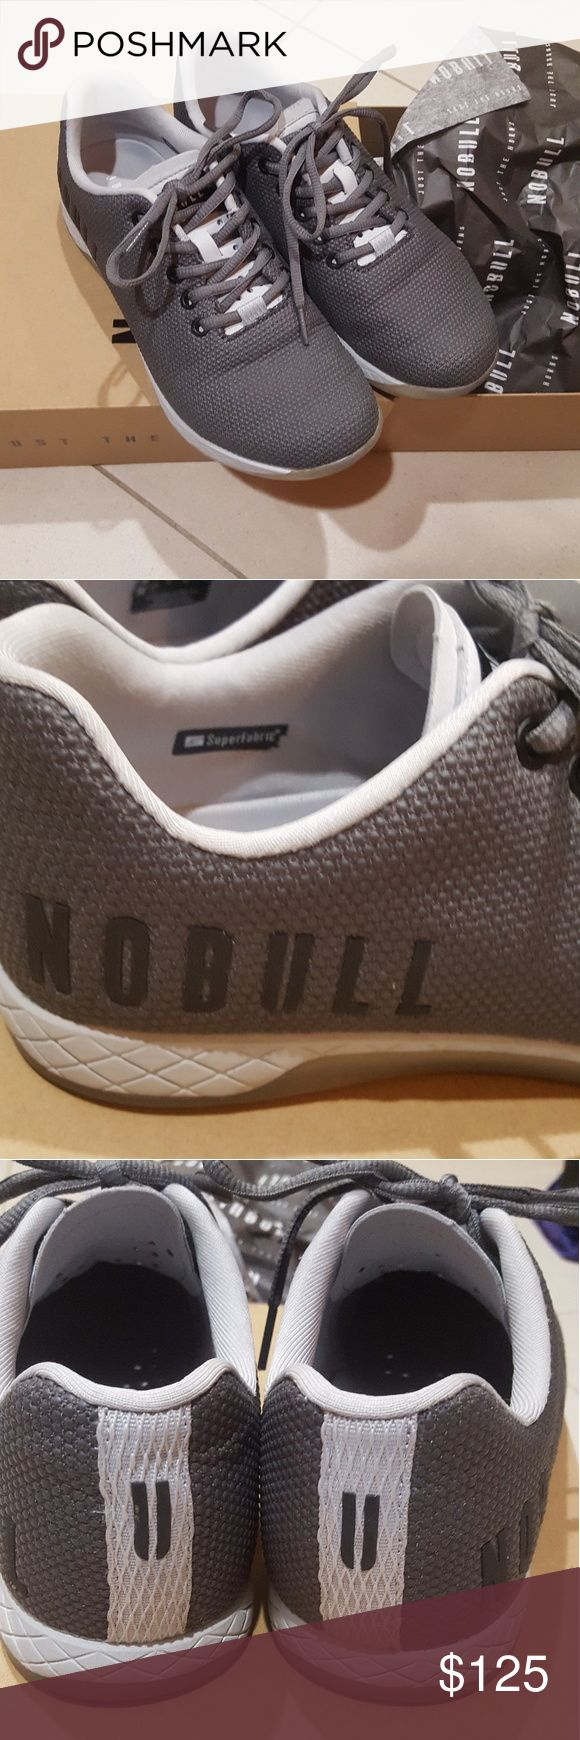 NoBull Trainers in Slate Grey 8.5 (Fits an 8) Brand new NoBull Trainers in Slate Grey. This is a new color, released October 10th and already sold out. Size 8.5 ladies. Runs small.  I received this afternoon (10/18) wore for one workout, and realized my toes were a little crowded....so that's why these are going up for sale. Will ship to you in original box with the tag, and extra green laces. You can't get these anywhere else! NoBull Project Shoes Athletic Shoes